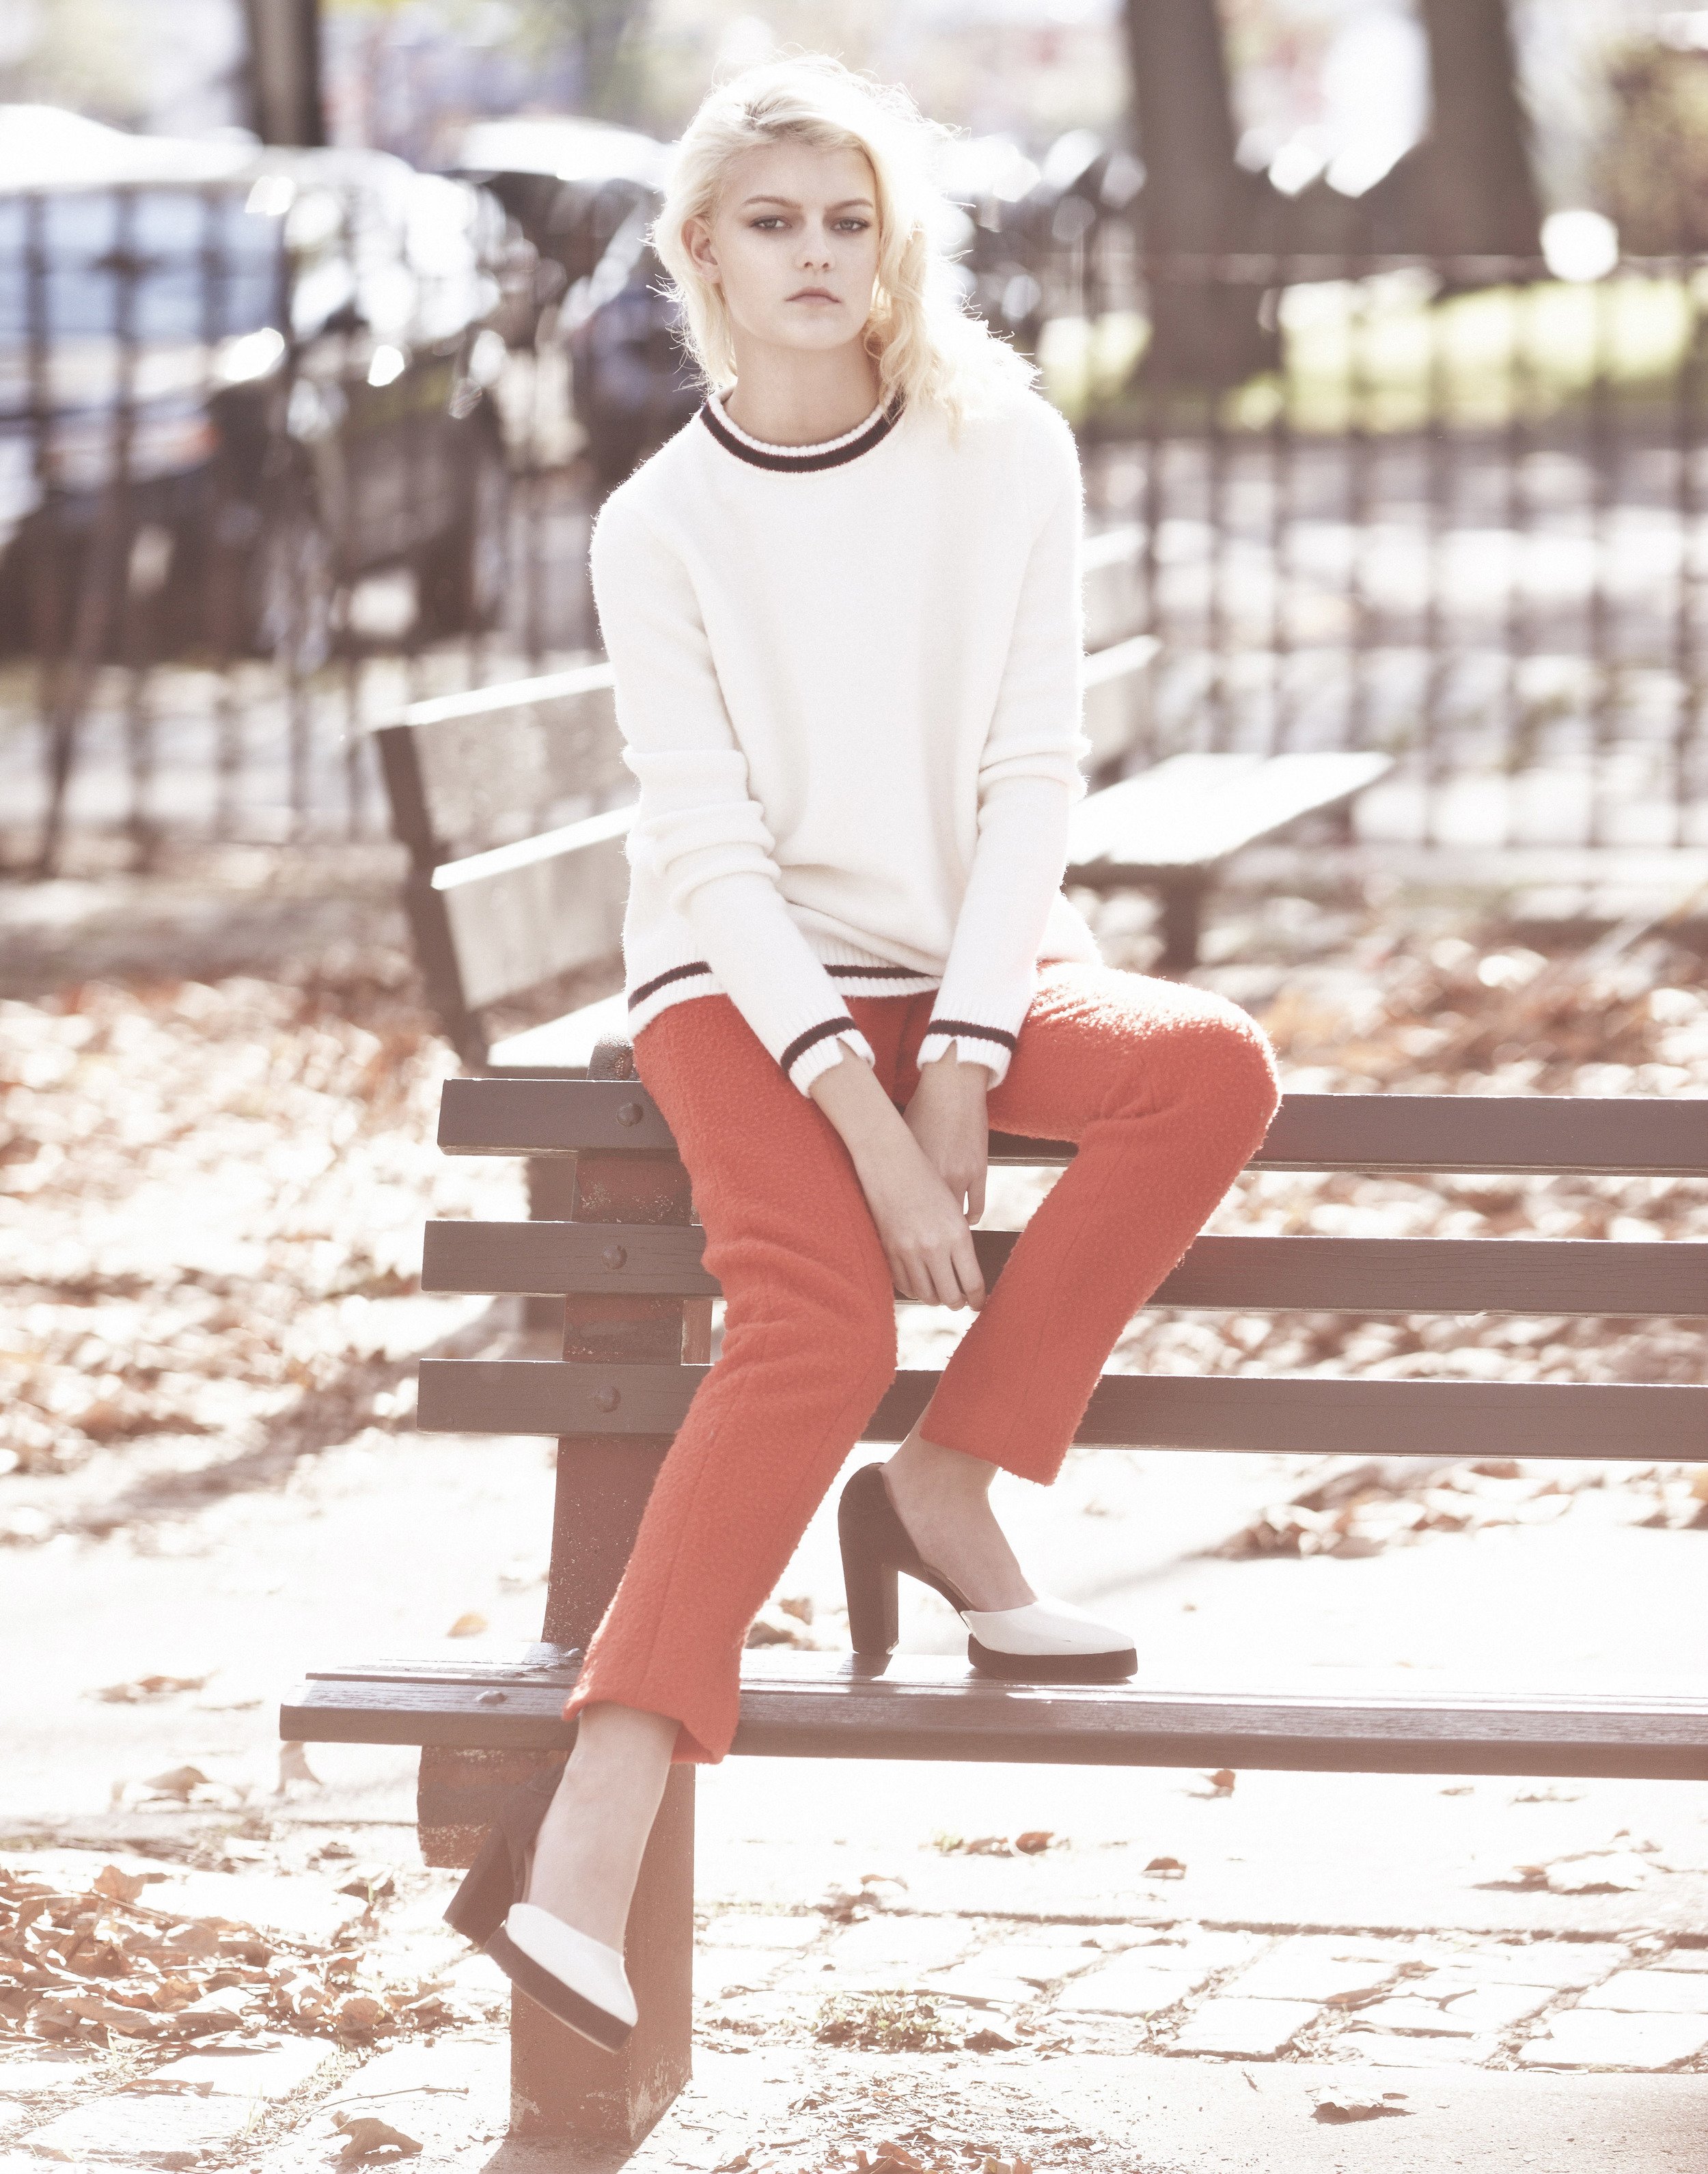 Sarah Fraser  (Wilhelmina) wears a sweater by Zara and pants and shoes by Osklen.